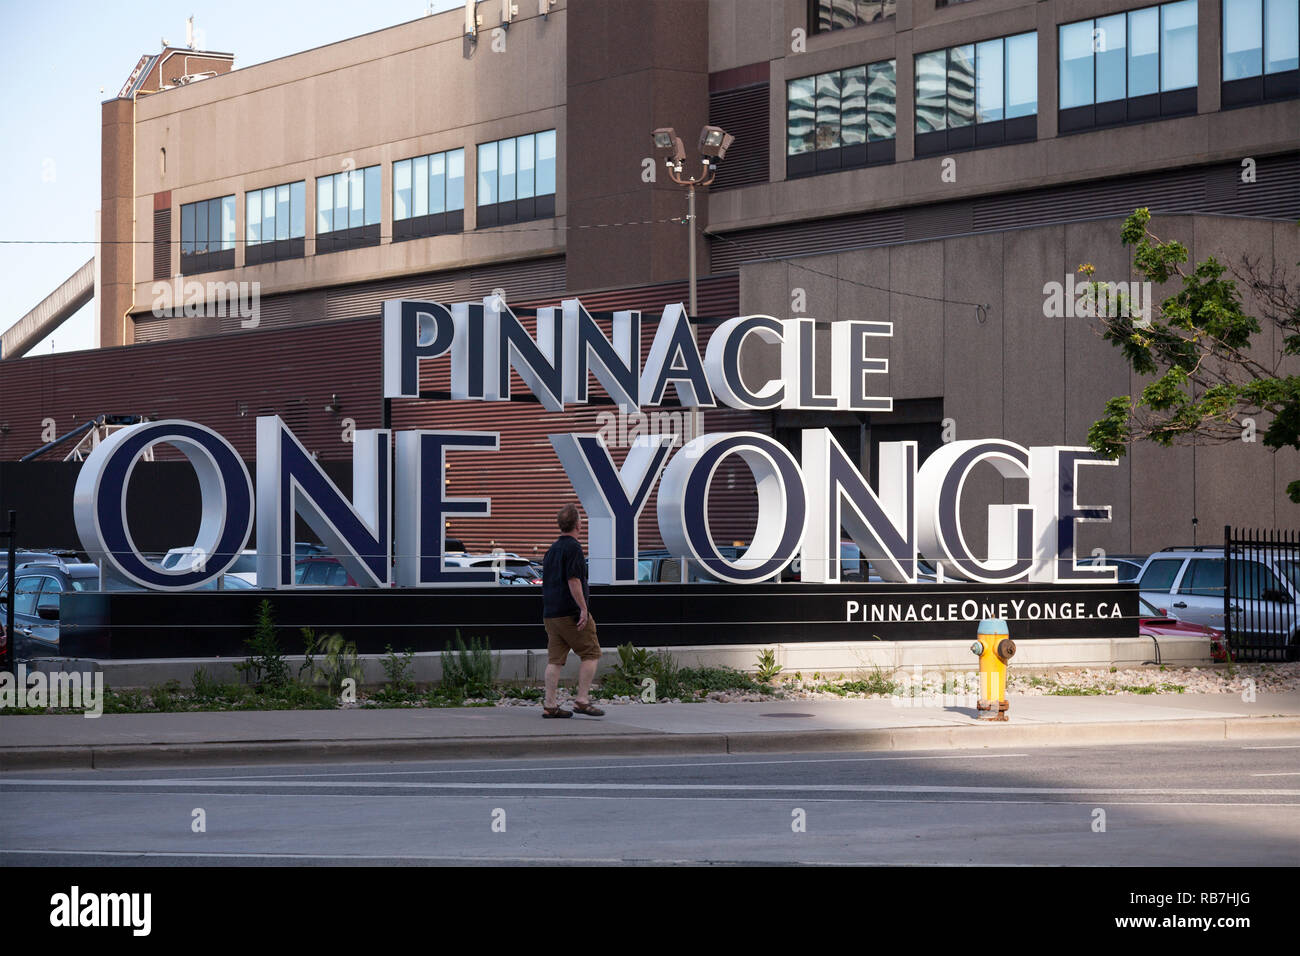 A sign for Pinnacle One Yonge, an upcoming development at the Toronto Star building (Torstar building) at One Yonge street. City of Toronto, Ontario. - Stock Image